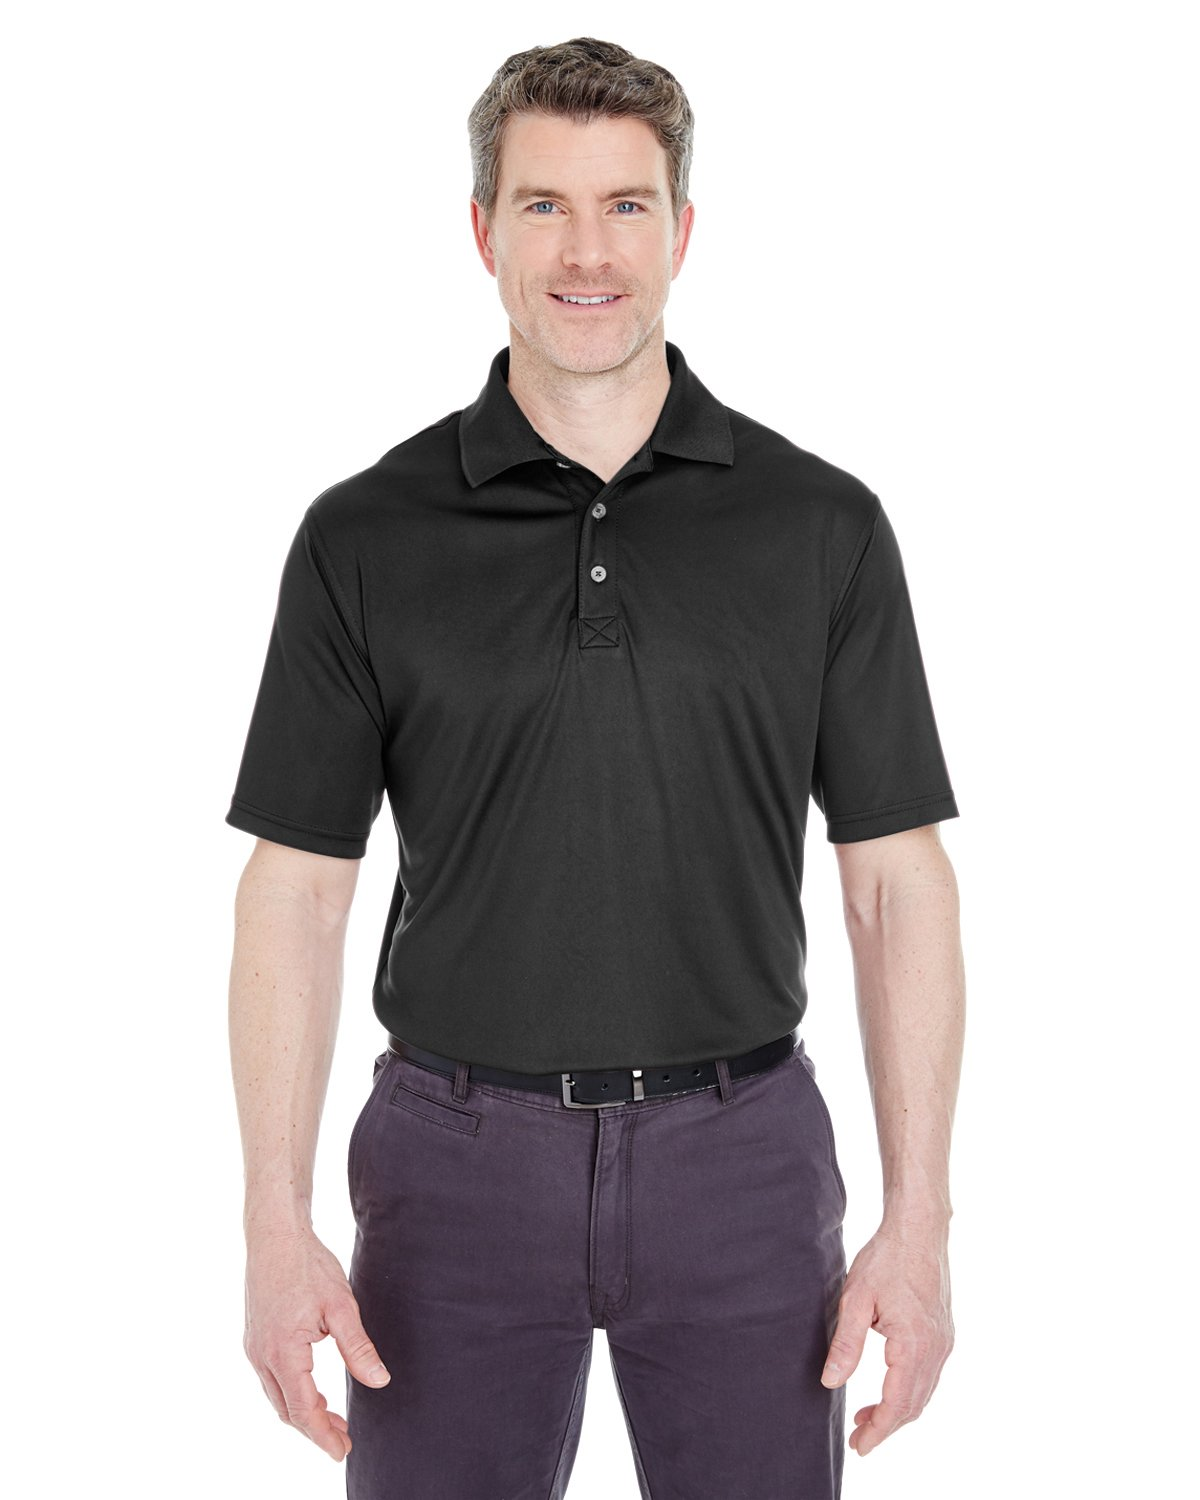 UltraClub Men's Cool & Dry Interlock Polo Shirt, Black, Small. (Pack of 6) by UltraClub (Image #1)